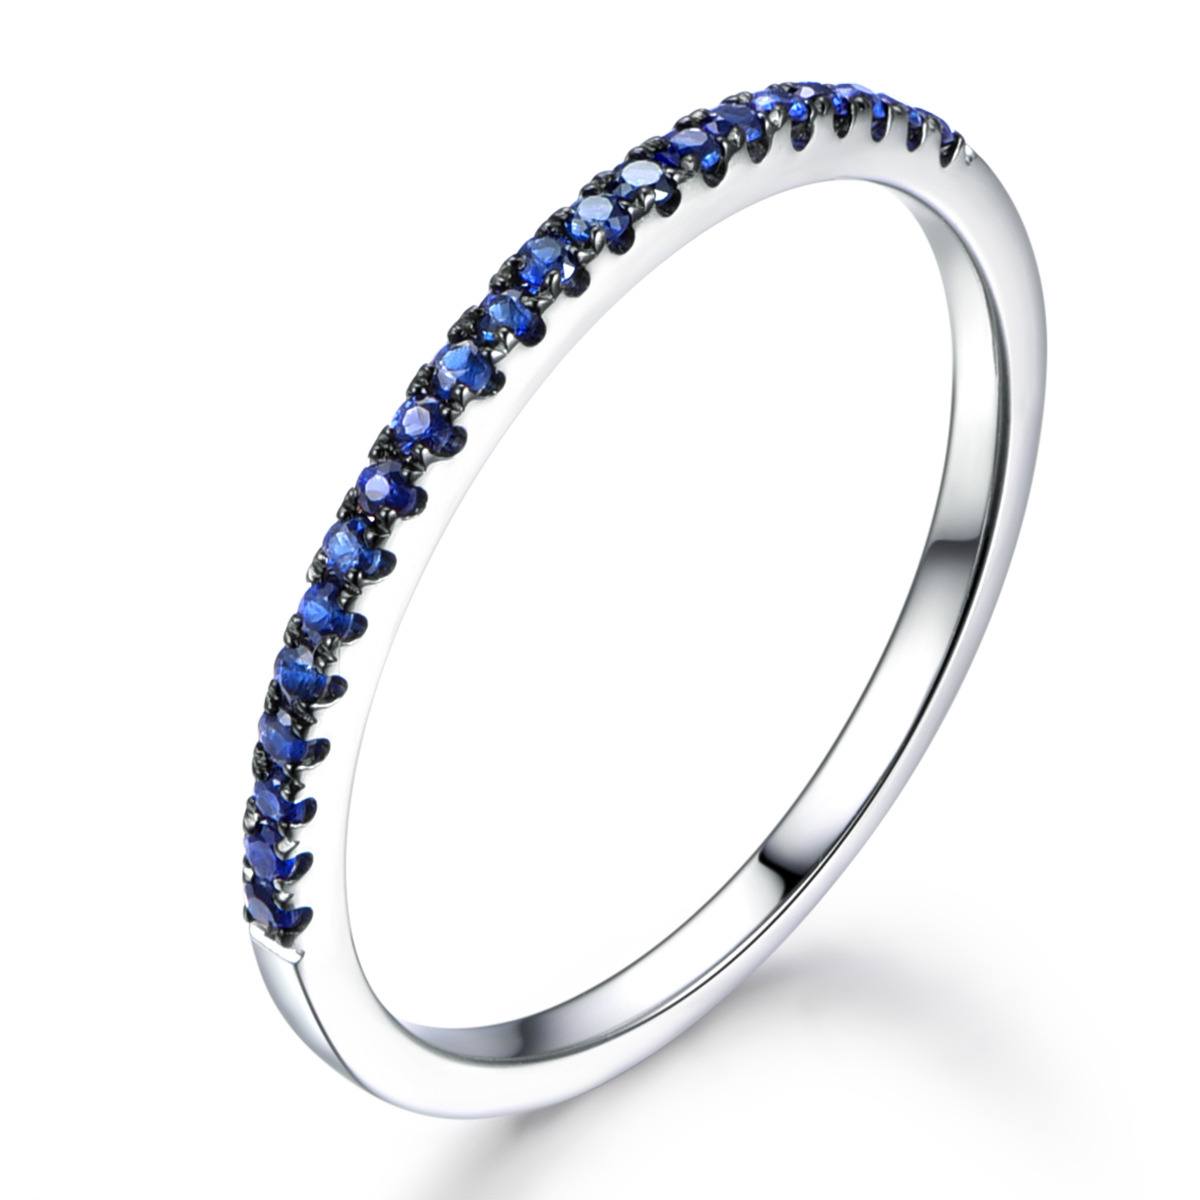 sapphire wedding band T W Blue Sapphire Engagement Wedding Band Ring 18K Black Gold fn eBay